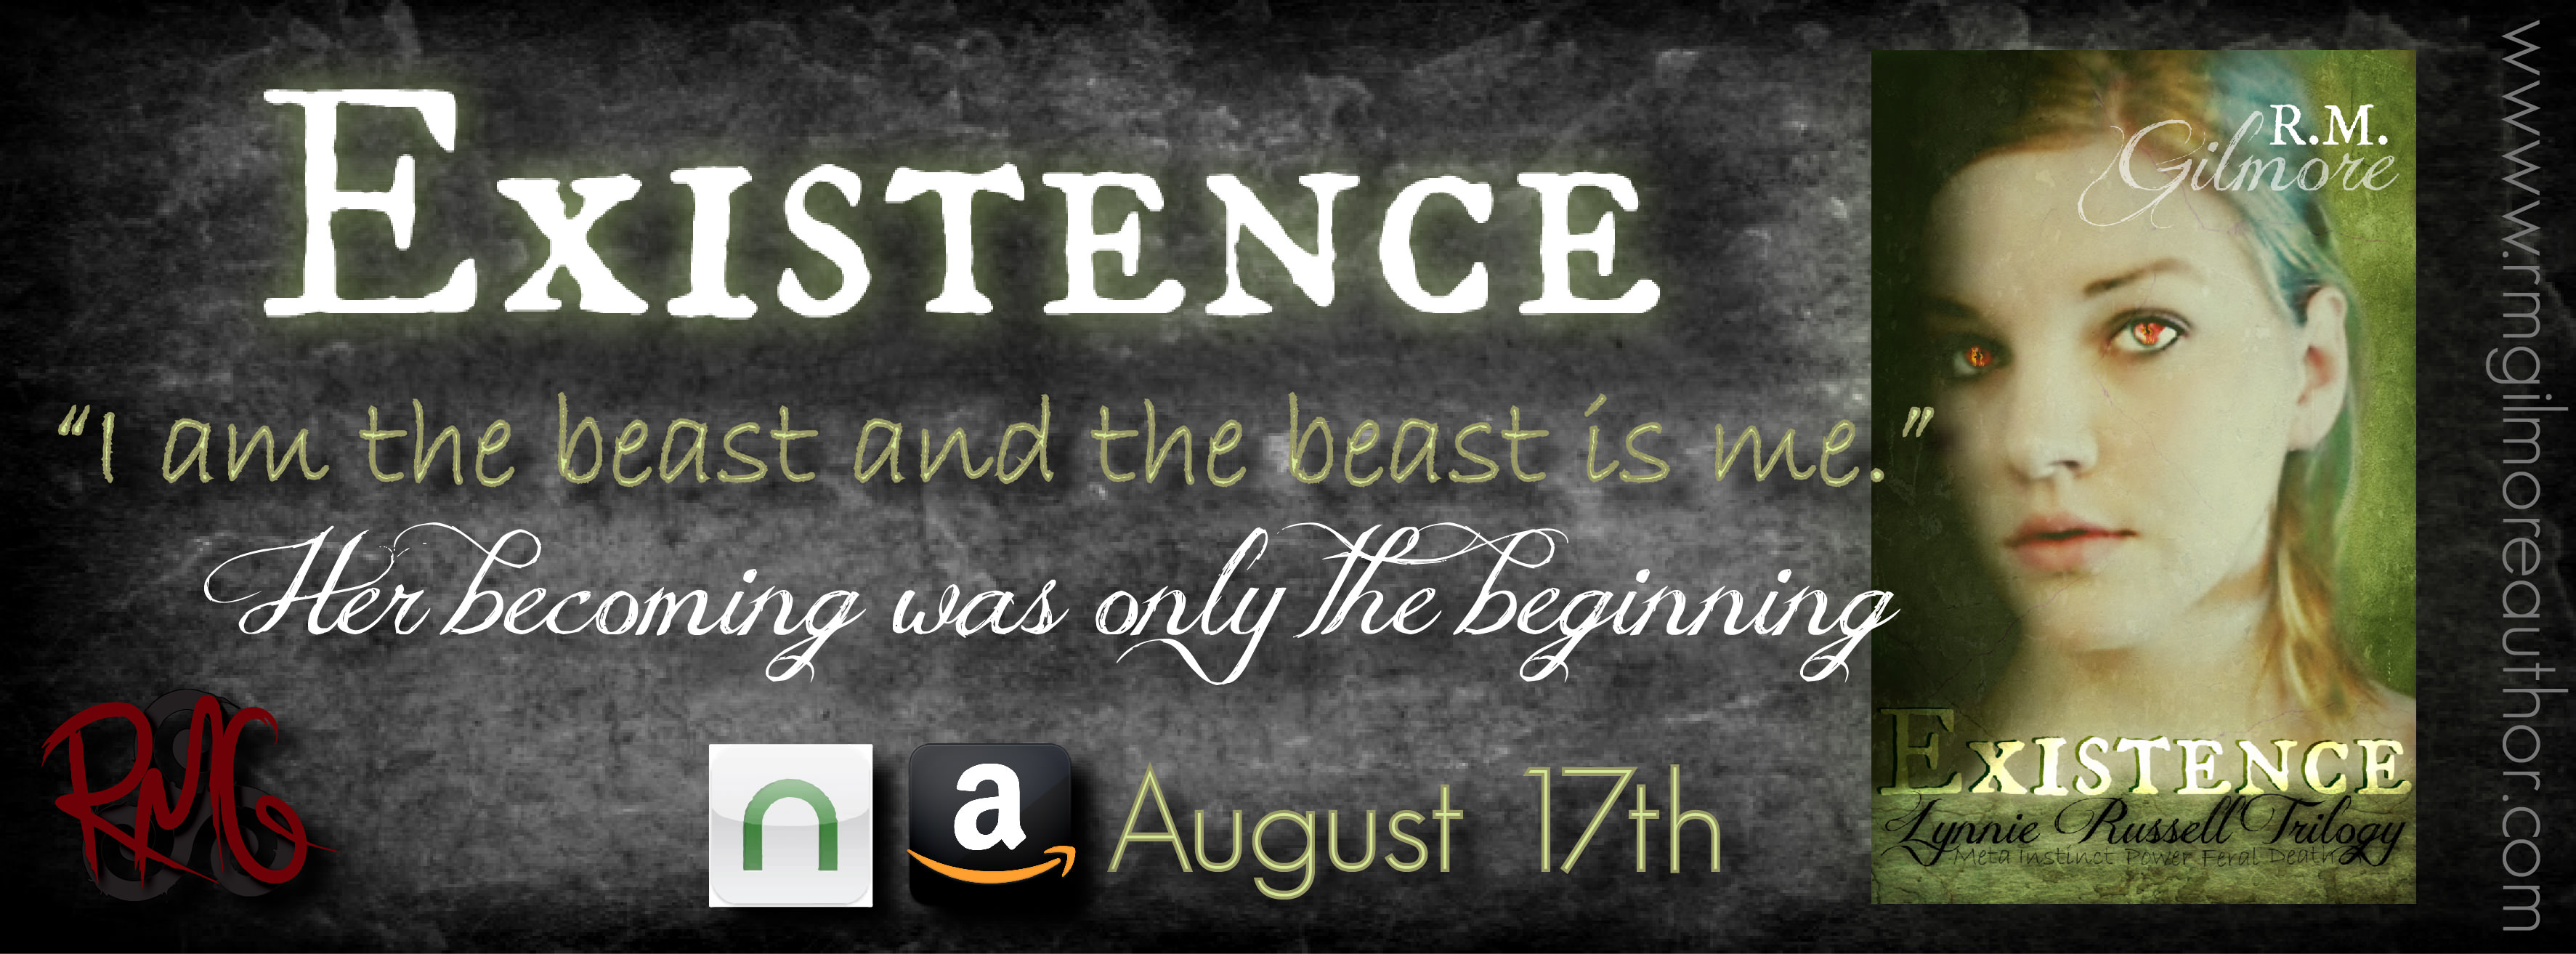 Existence Banner